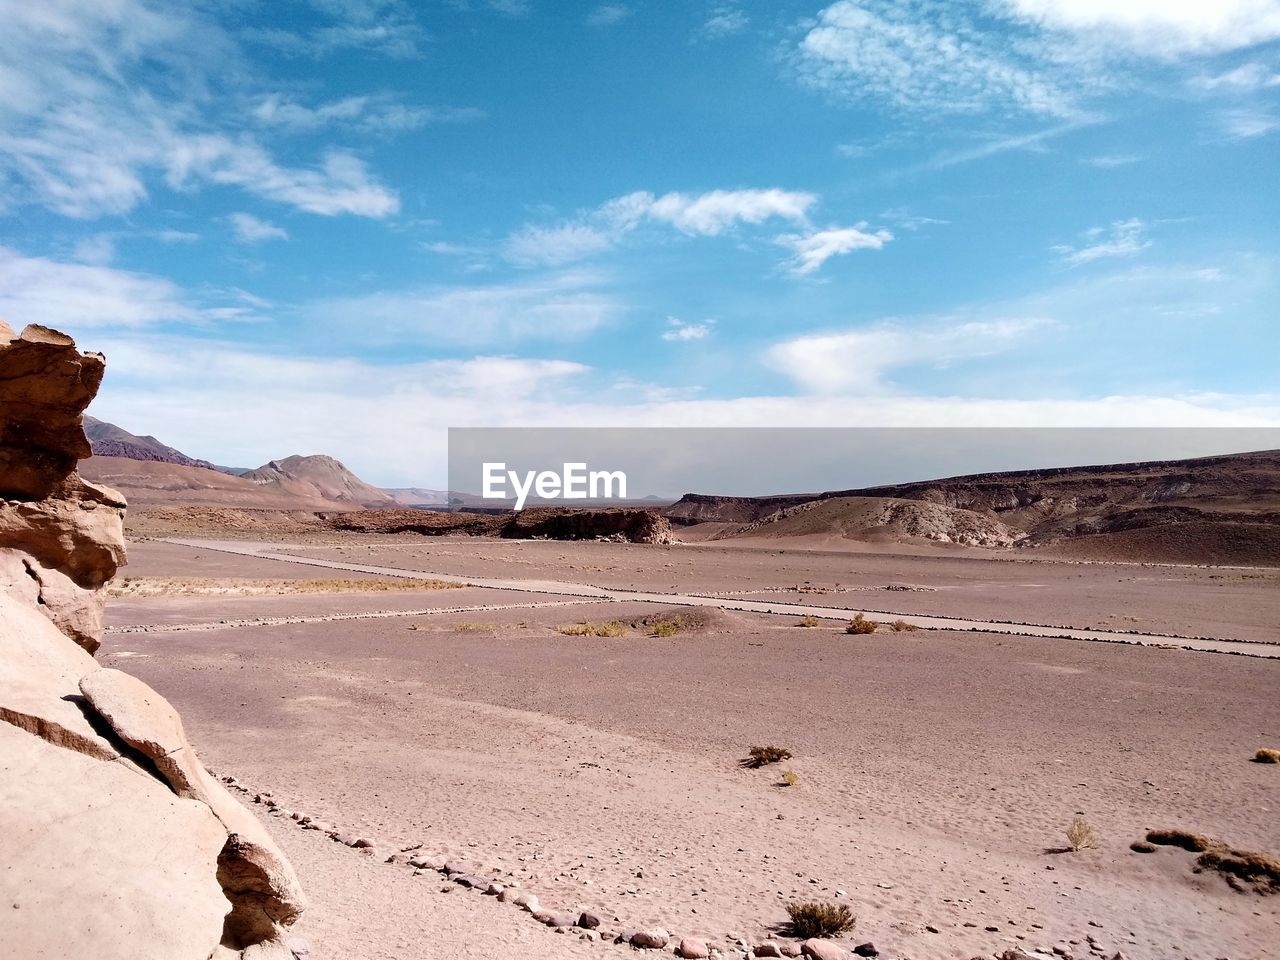 sky, scenics - nature, environment, tranquil scene, landscape, tranquility, beauty in nature, non-urban scene, cloud - sky, desert, climate, land, day, nature, arid climate, remote, mountain, no people, rock formation, sunlight, outdoors, salt flat